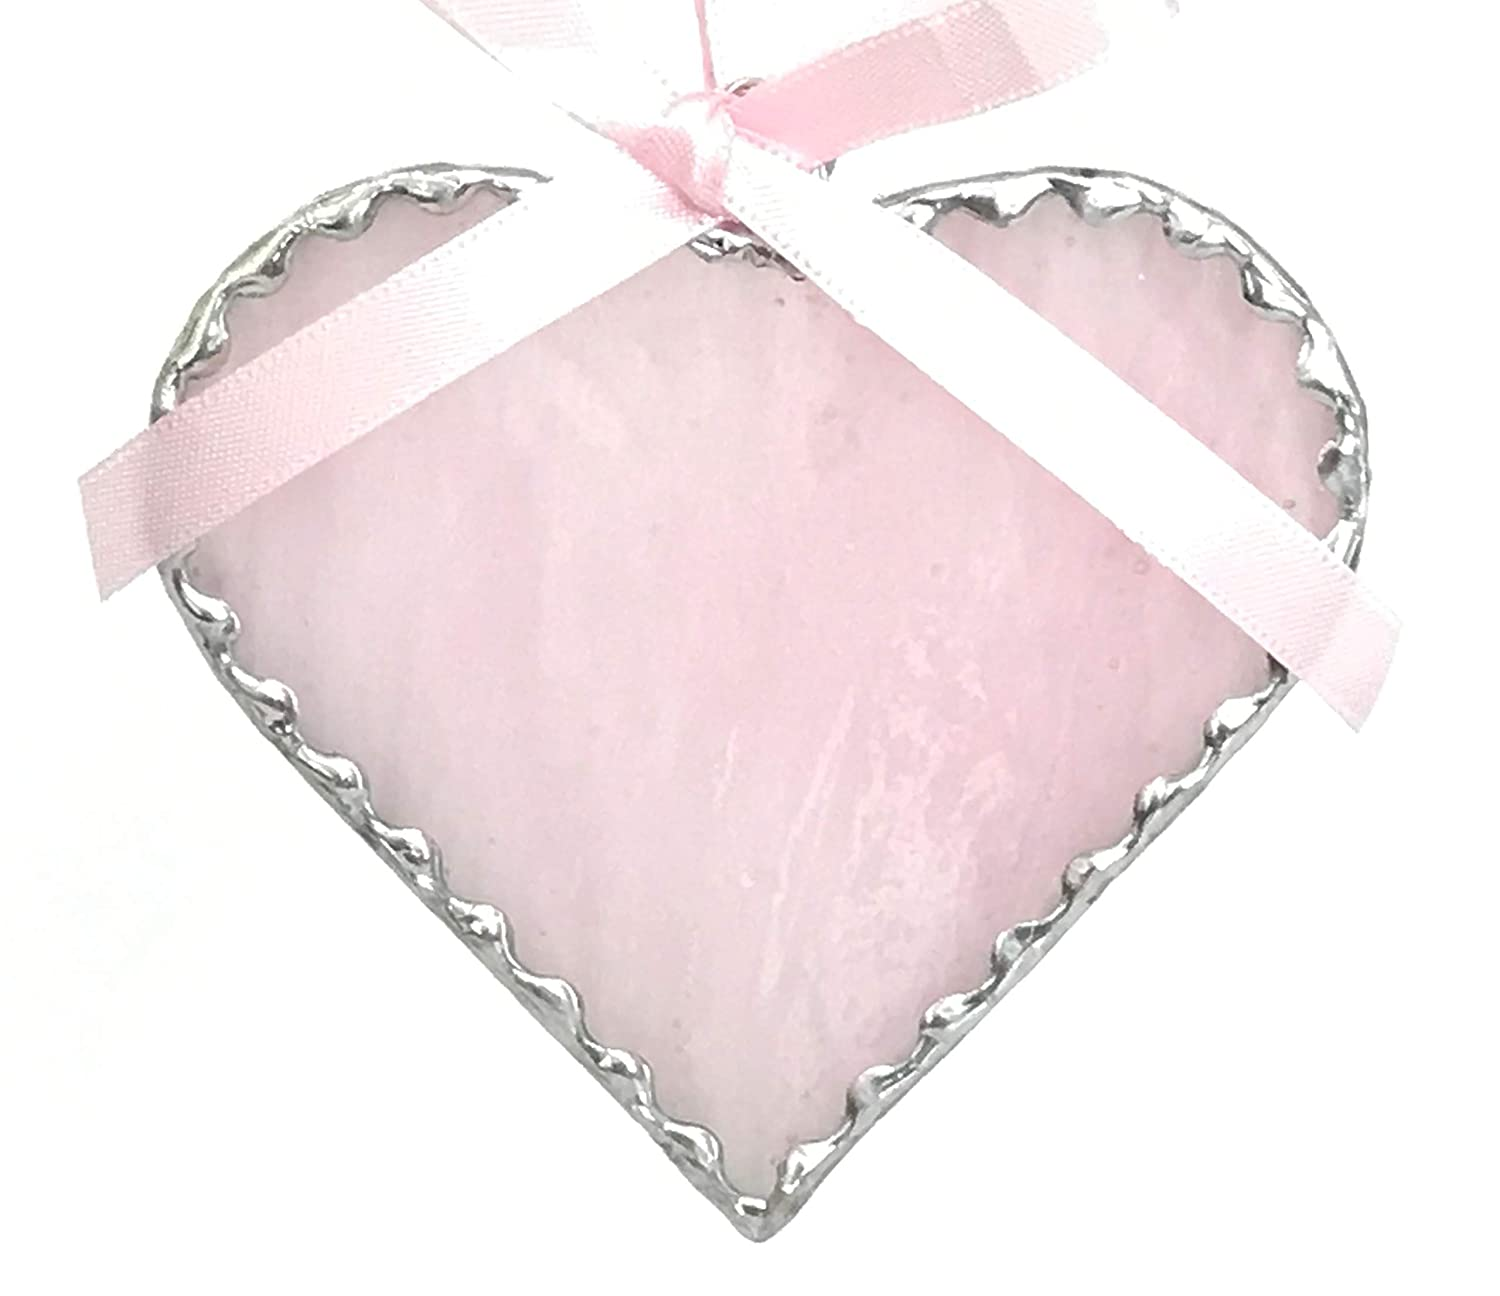 Some reservation Heart Pastel Pink Stained Ornament Window Glass Popular overseas Suncatcher